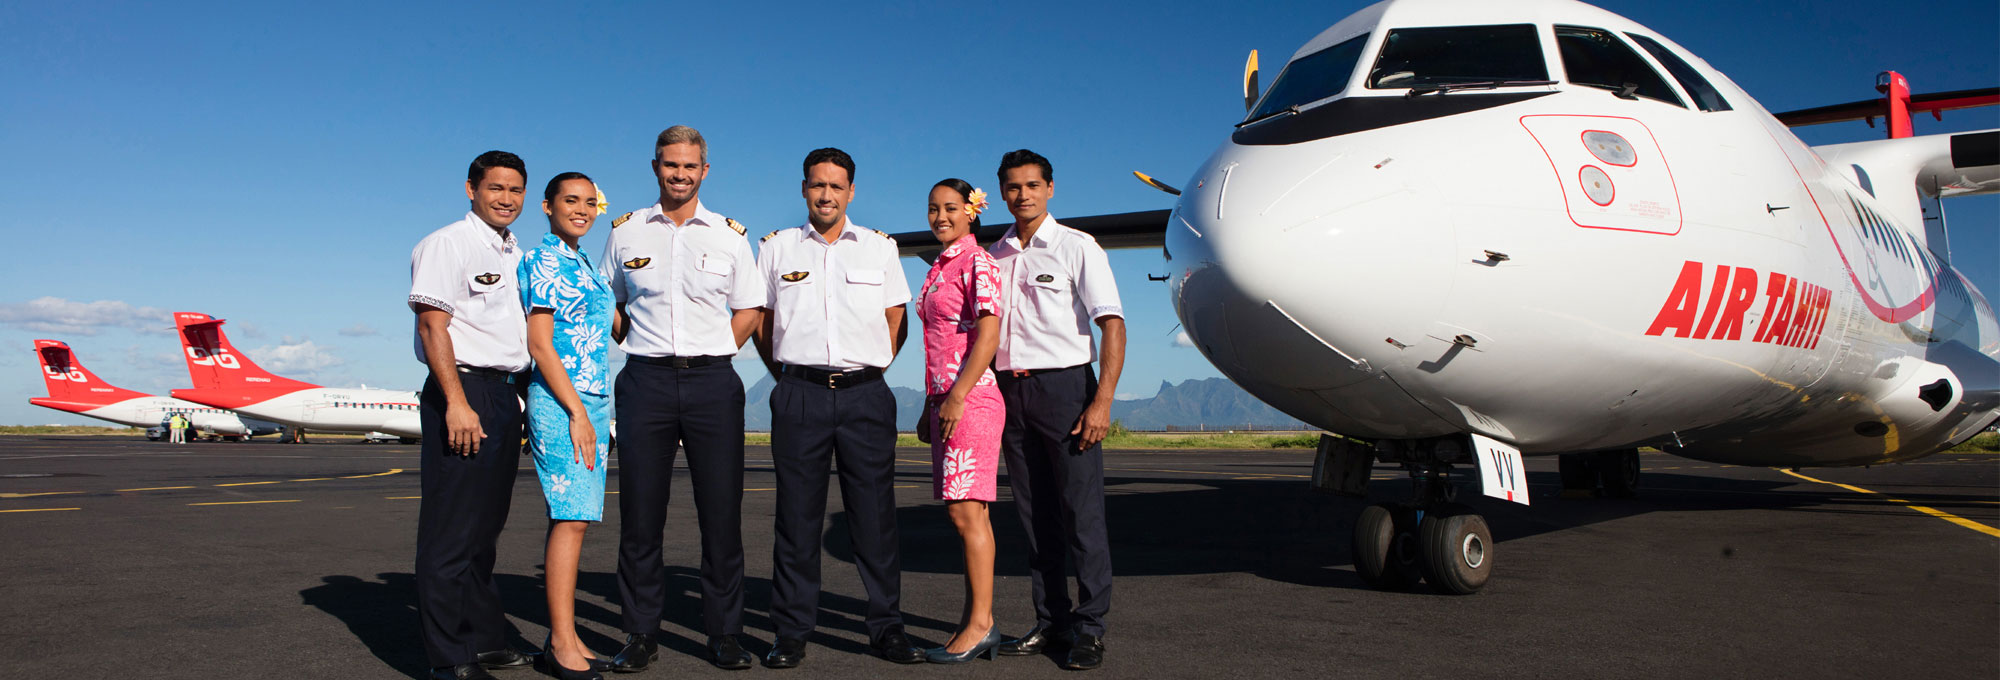 Air Tahiti crew in front of ATR 72 on Tahiti tarmac - © G. Le Bacon